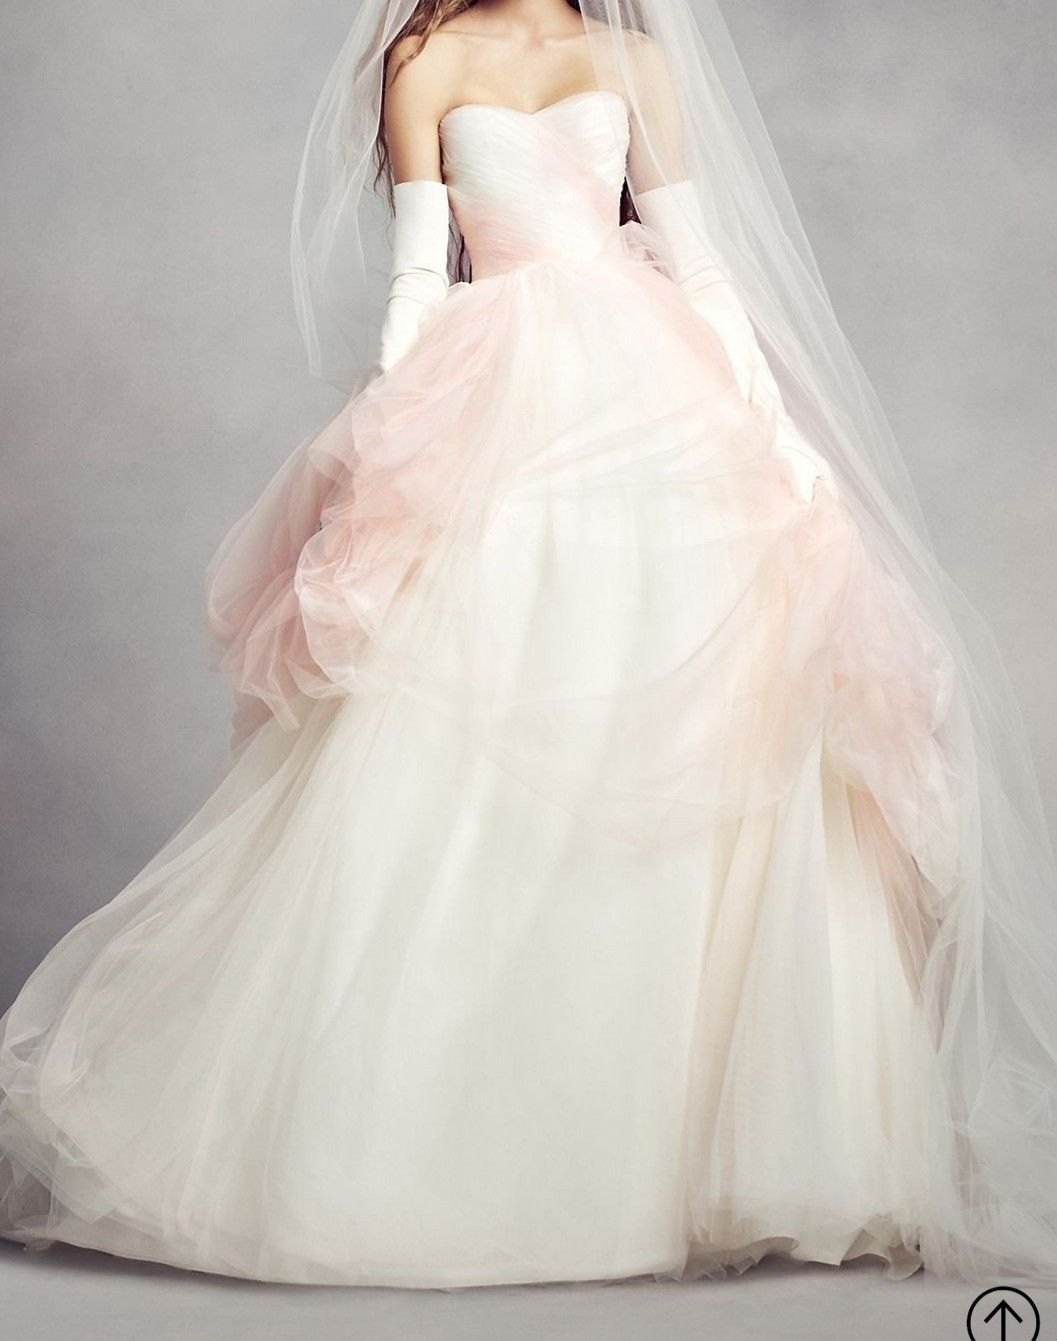 Vera Wang Strapless Tulle Ombre Ballgown In Ivory Pearl Nwt New Wedding Dress Save 41 Vera Wang Dress Wedding Dresses Vera Wang Ball Gown Wedding Dress